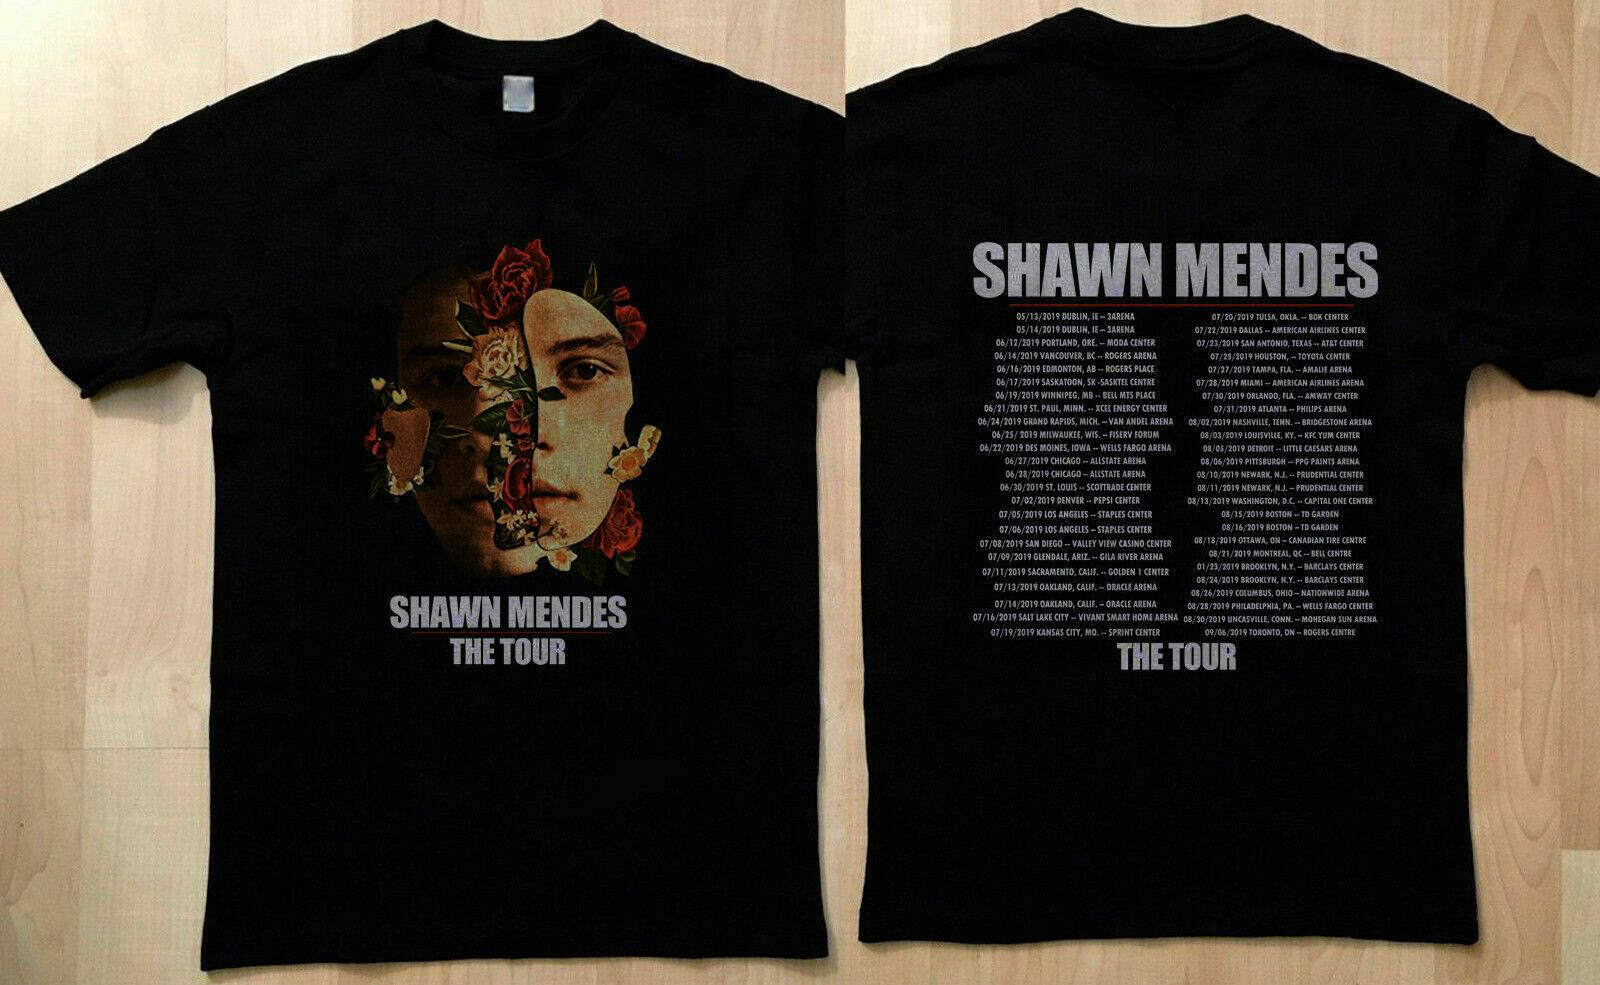 SHAWN MENDES The Tour 2020 T-SHIRT Limited All Size Tee Normal Short Sleeve Cotton T Shirts Newest 2020 Fashion Top Tee